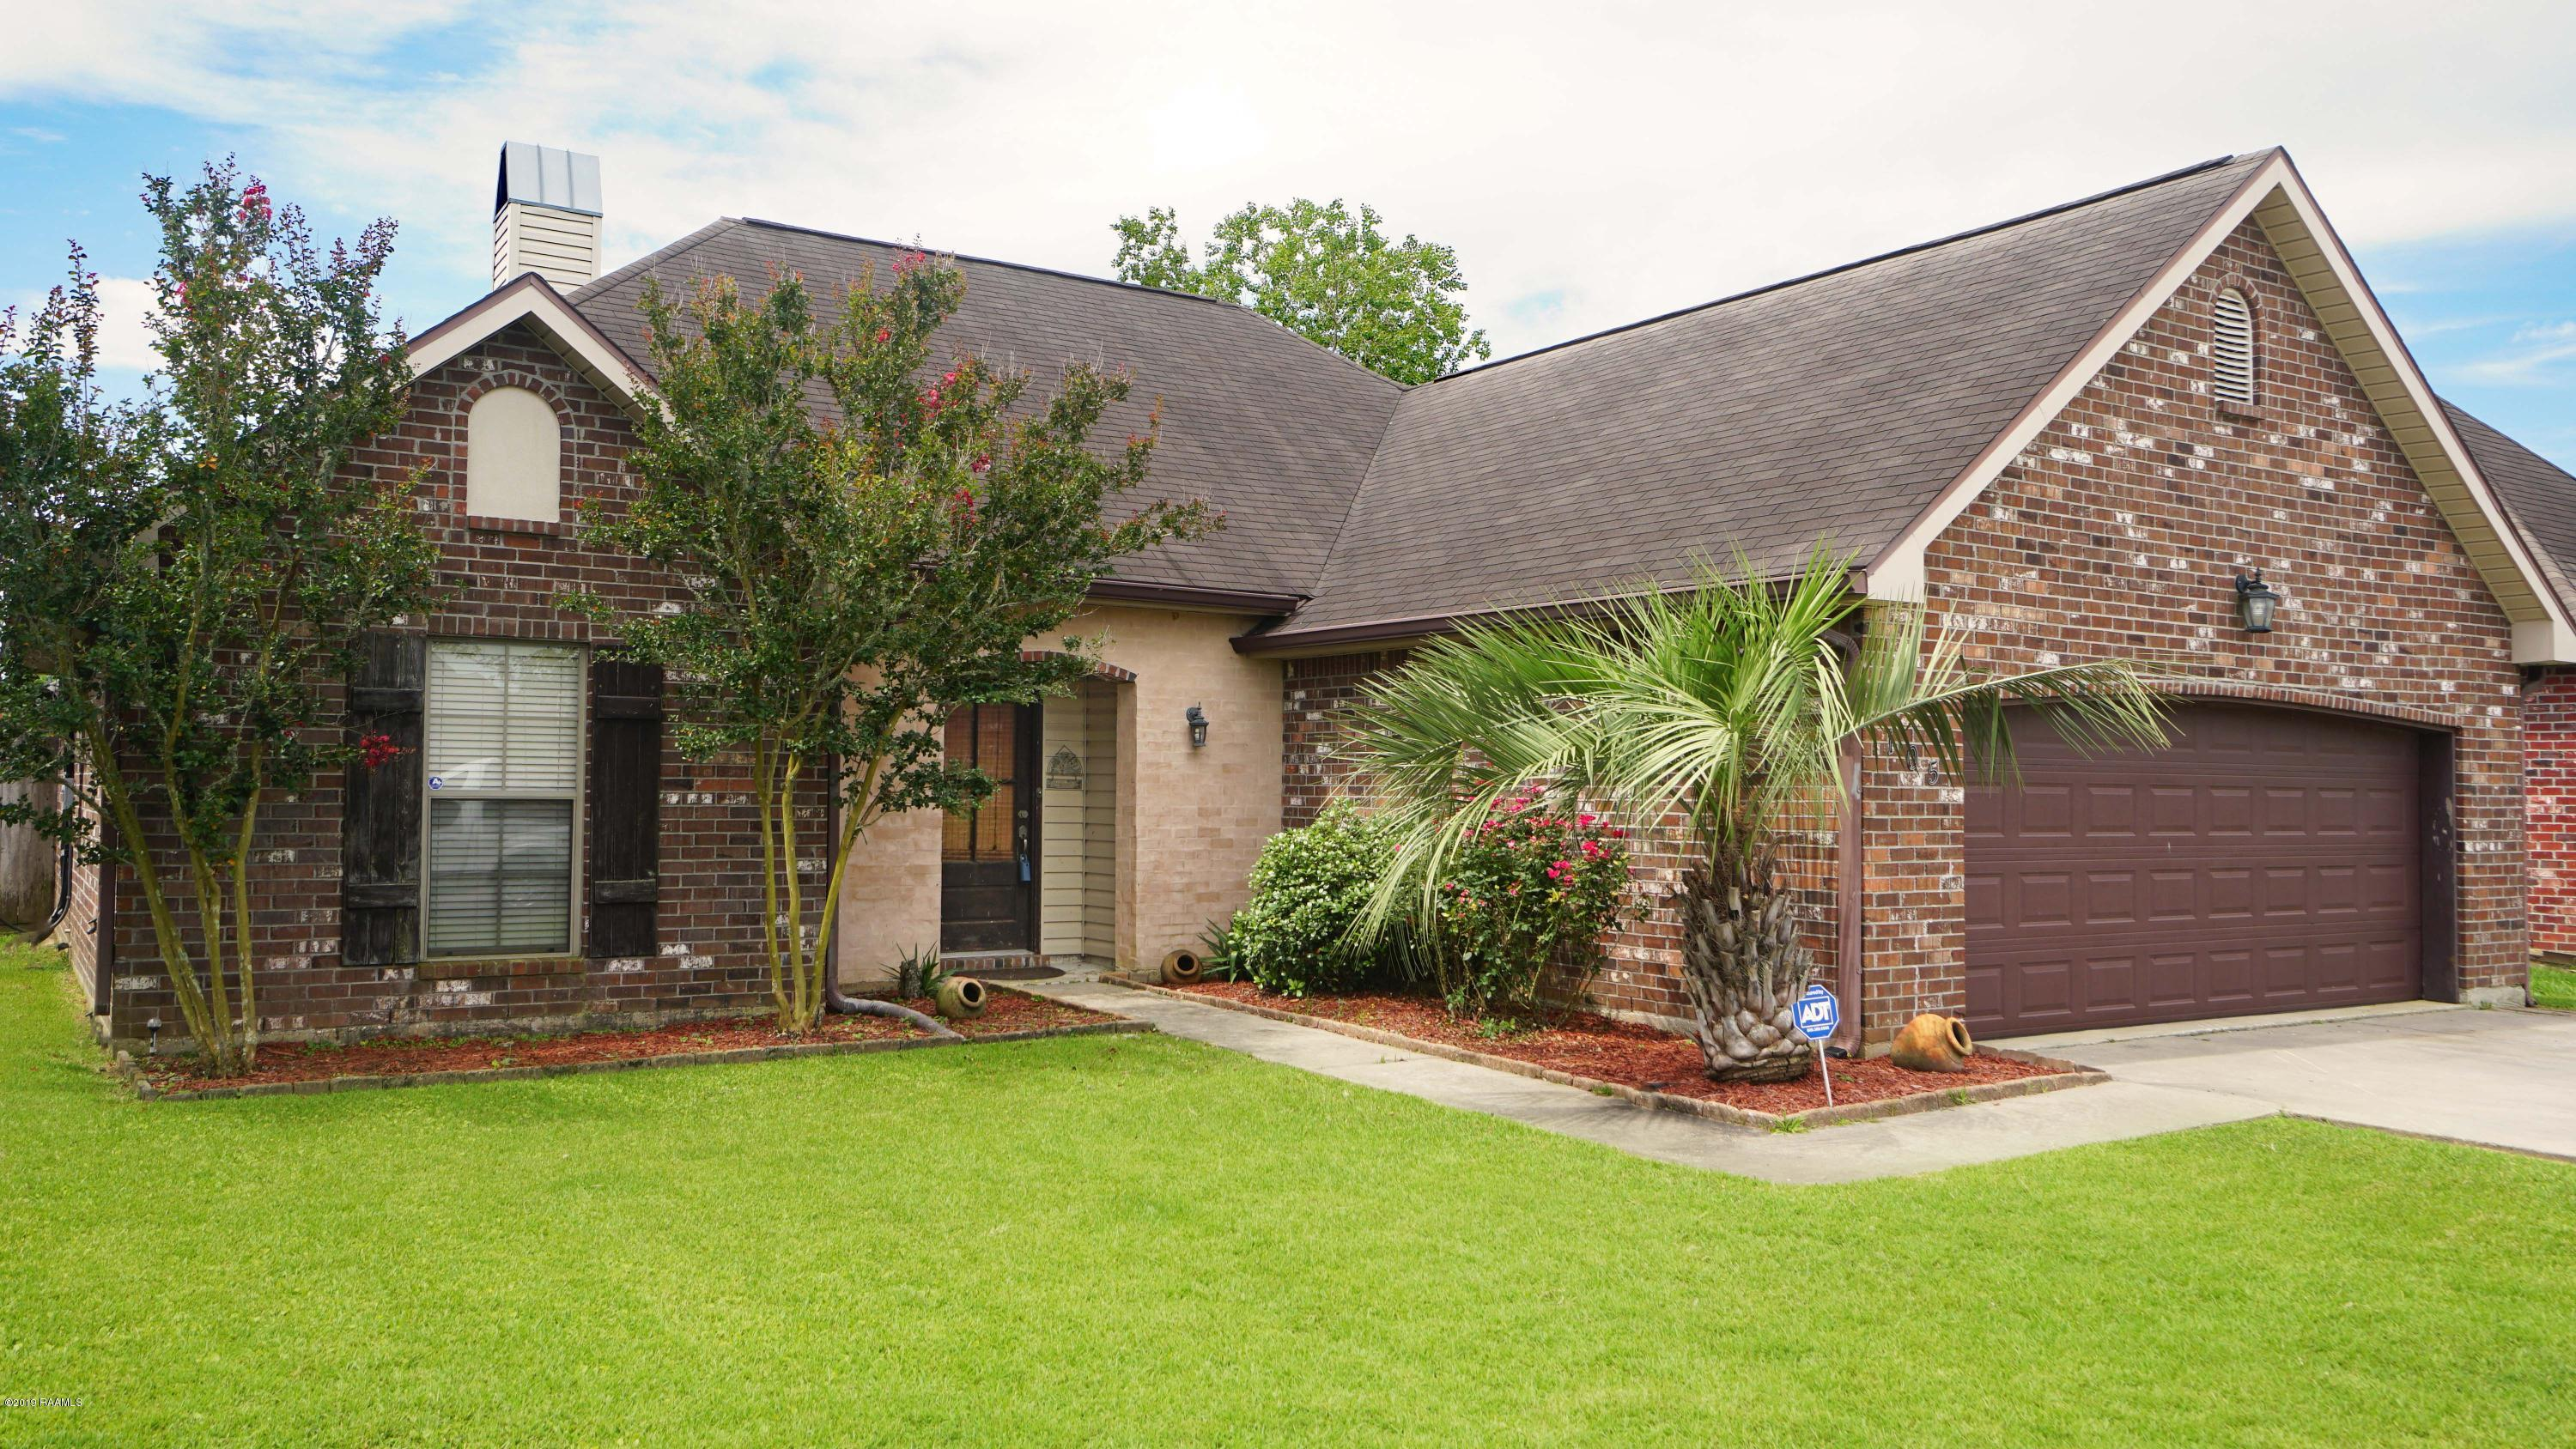 105 Nestling Cove, Carencro, LA 70520